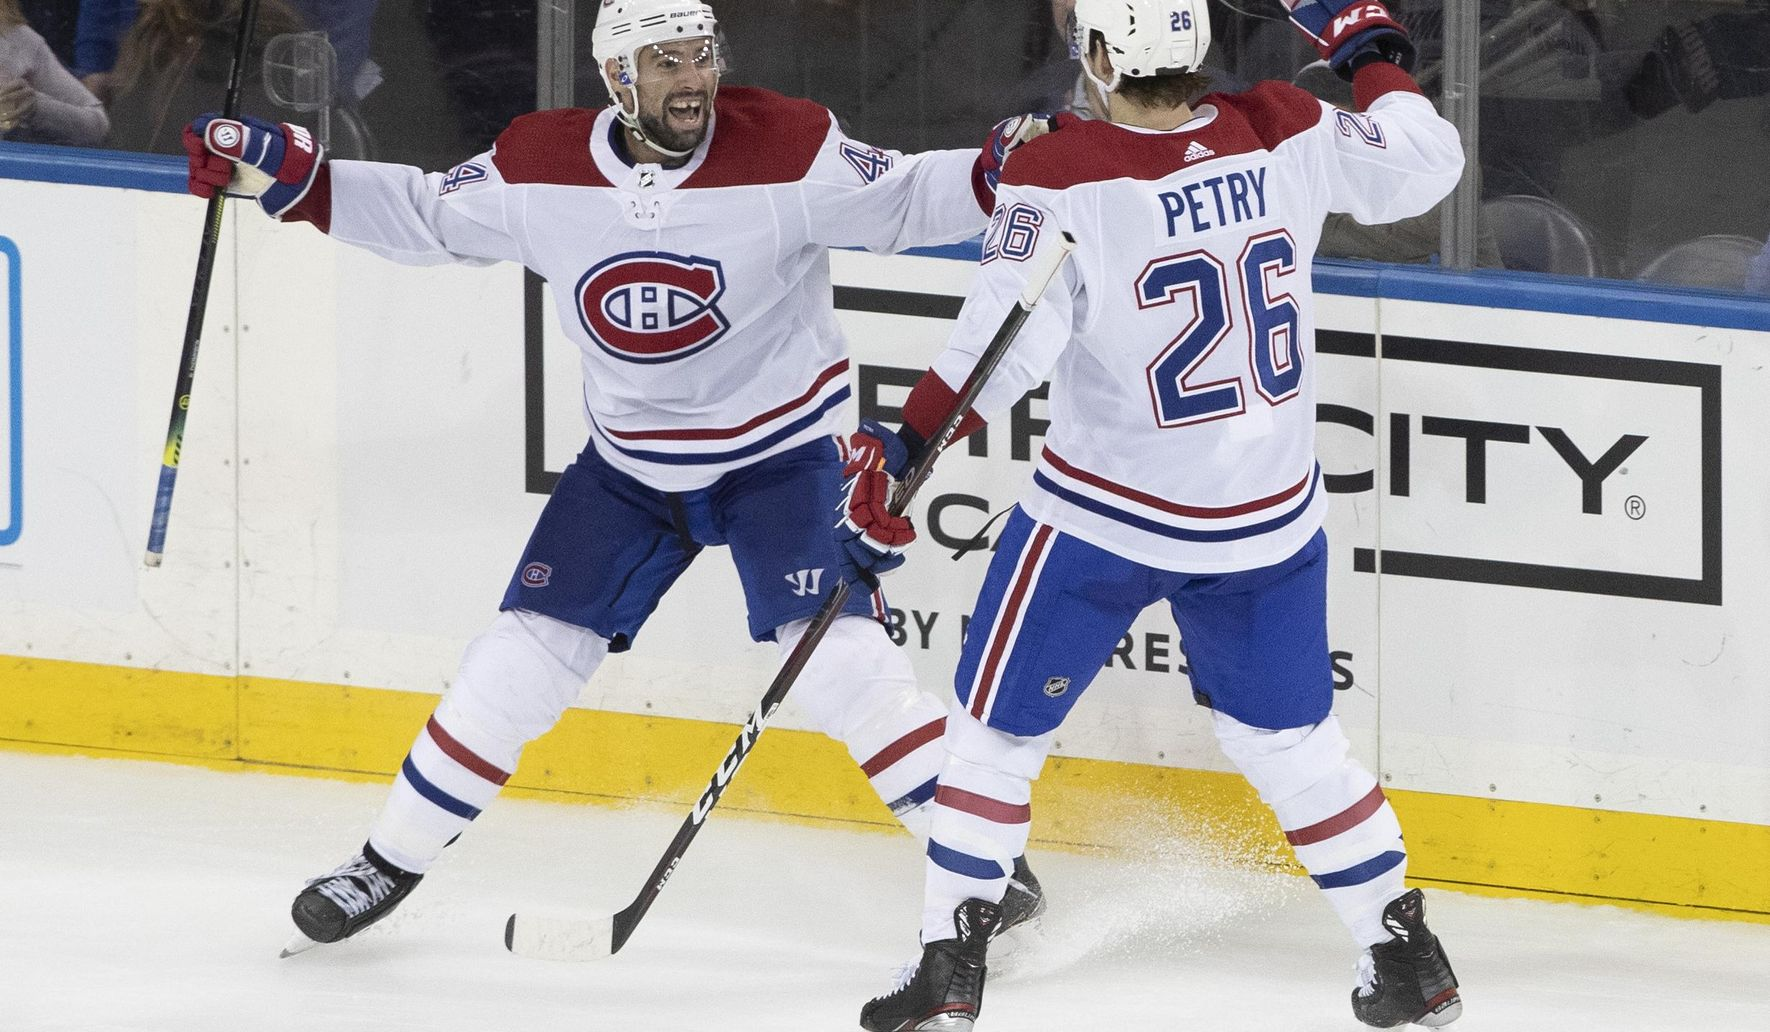 Canadiens_rangers_hockey_21117_c0-103-2458-1536_s1770x1032